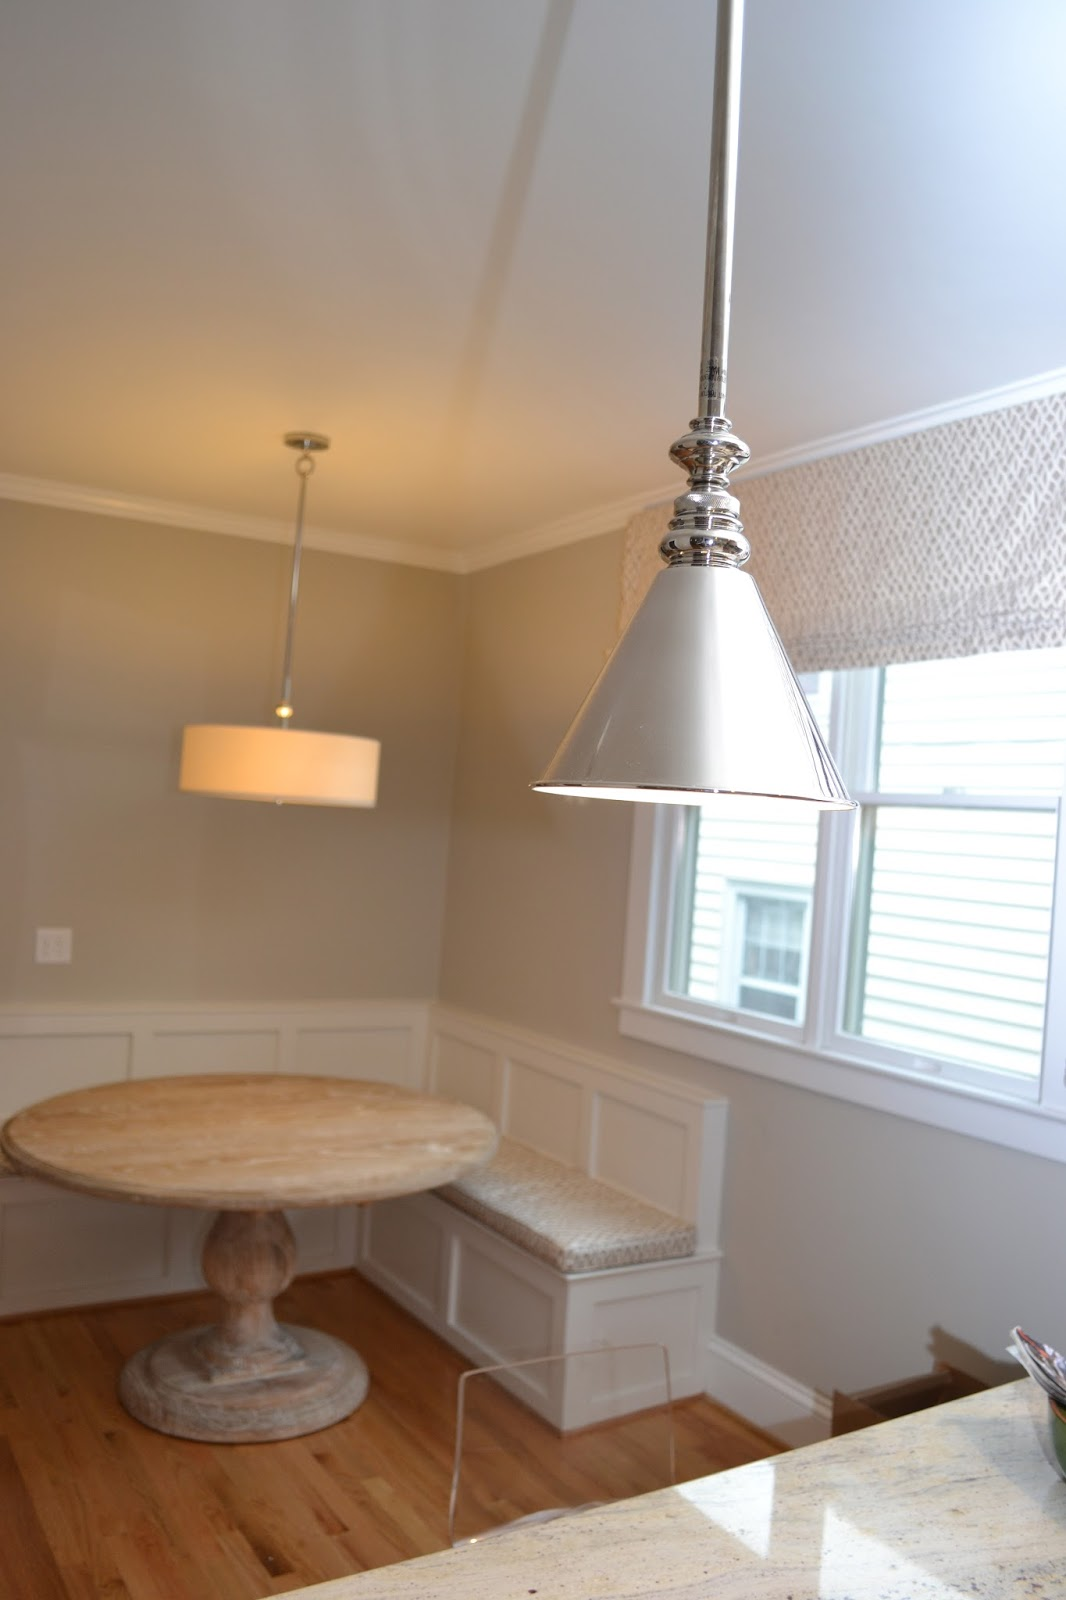 LUCY WILLIAMS INTERIOR DESIGN BLOG: BEFORE AND AFTER: MAGNOLIA ...